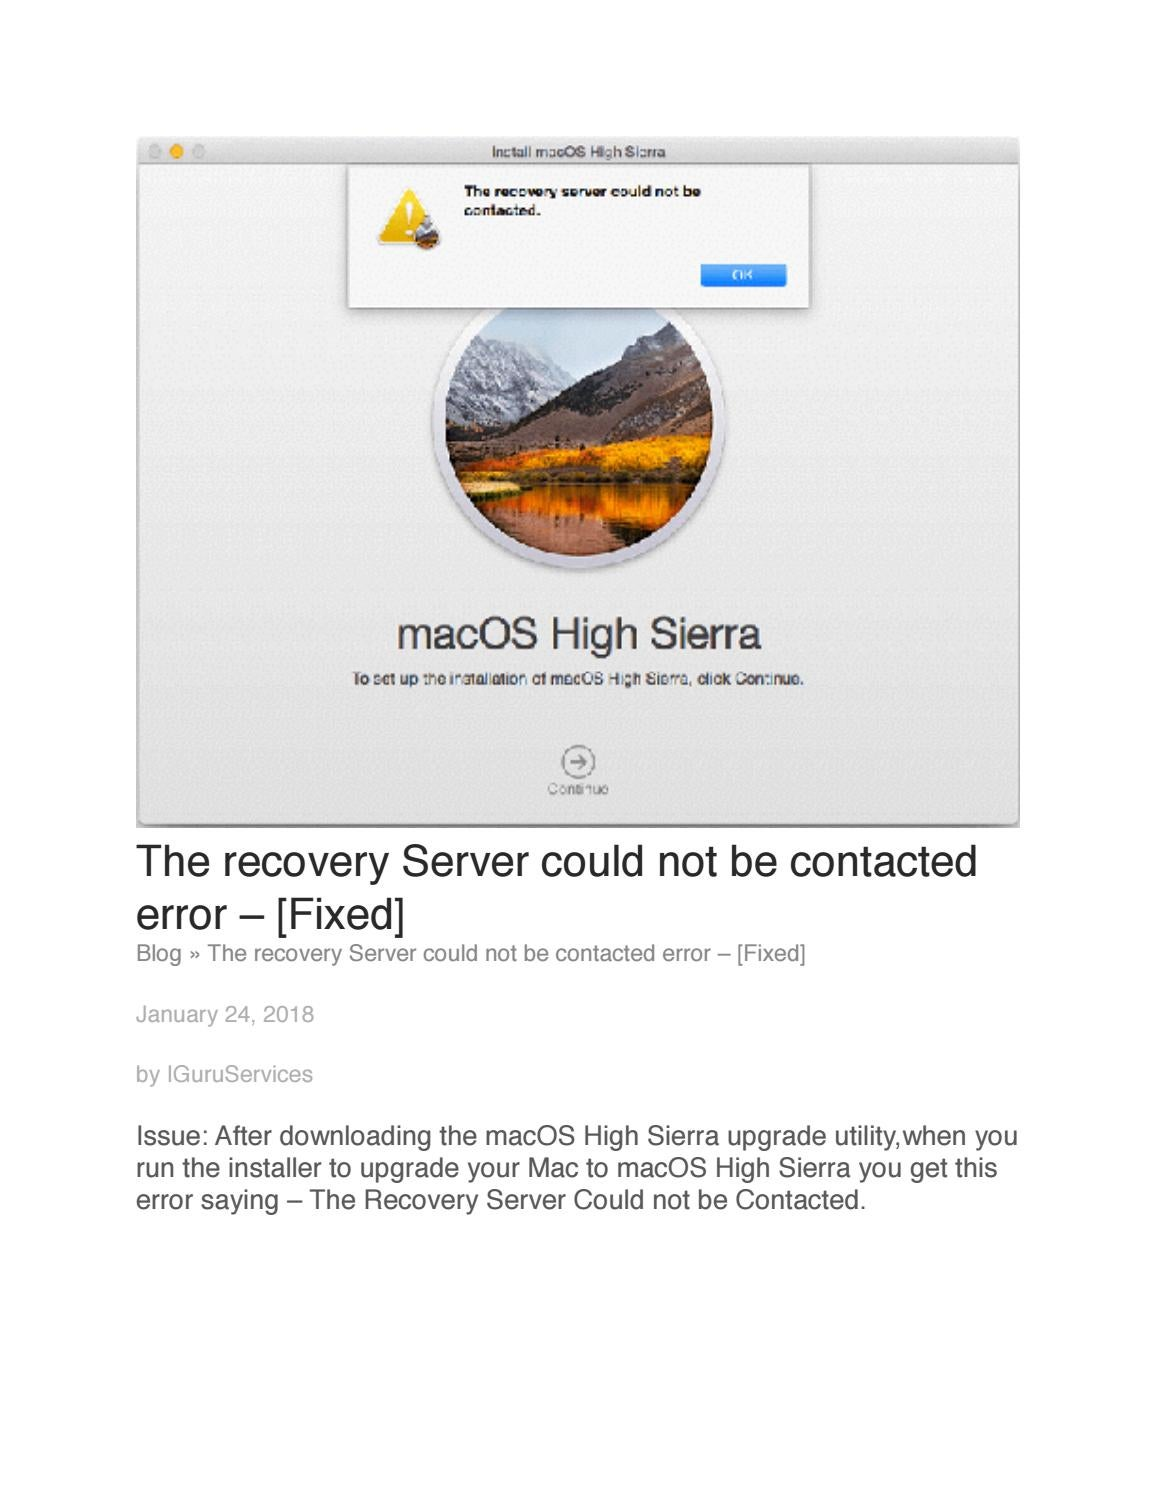 The Recovery Server Could Not Be Contacted Macos High Sierra